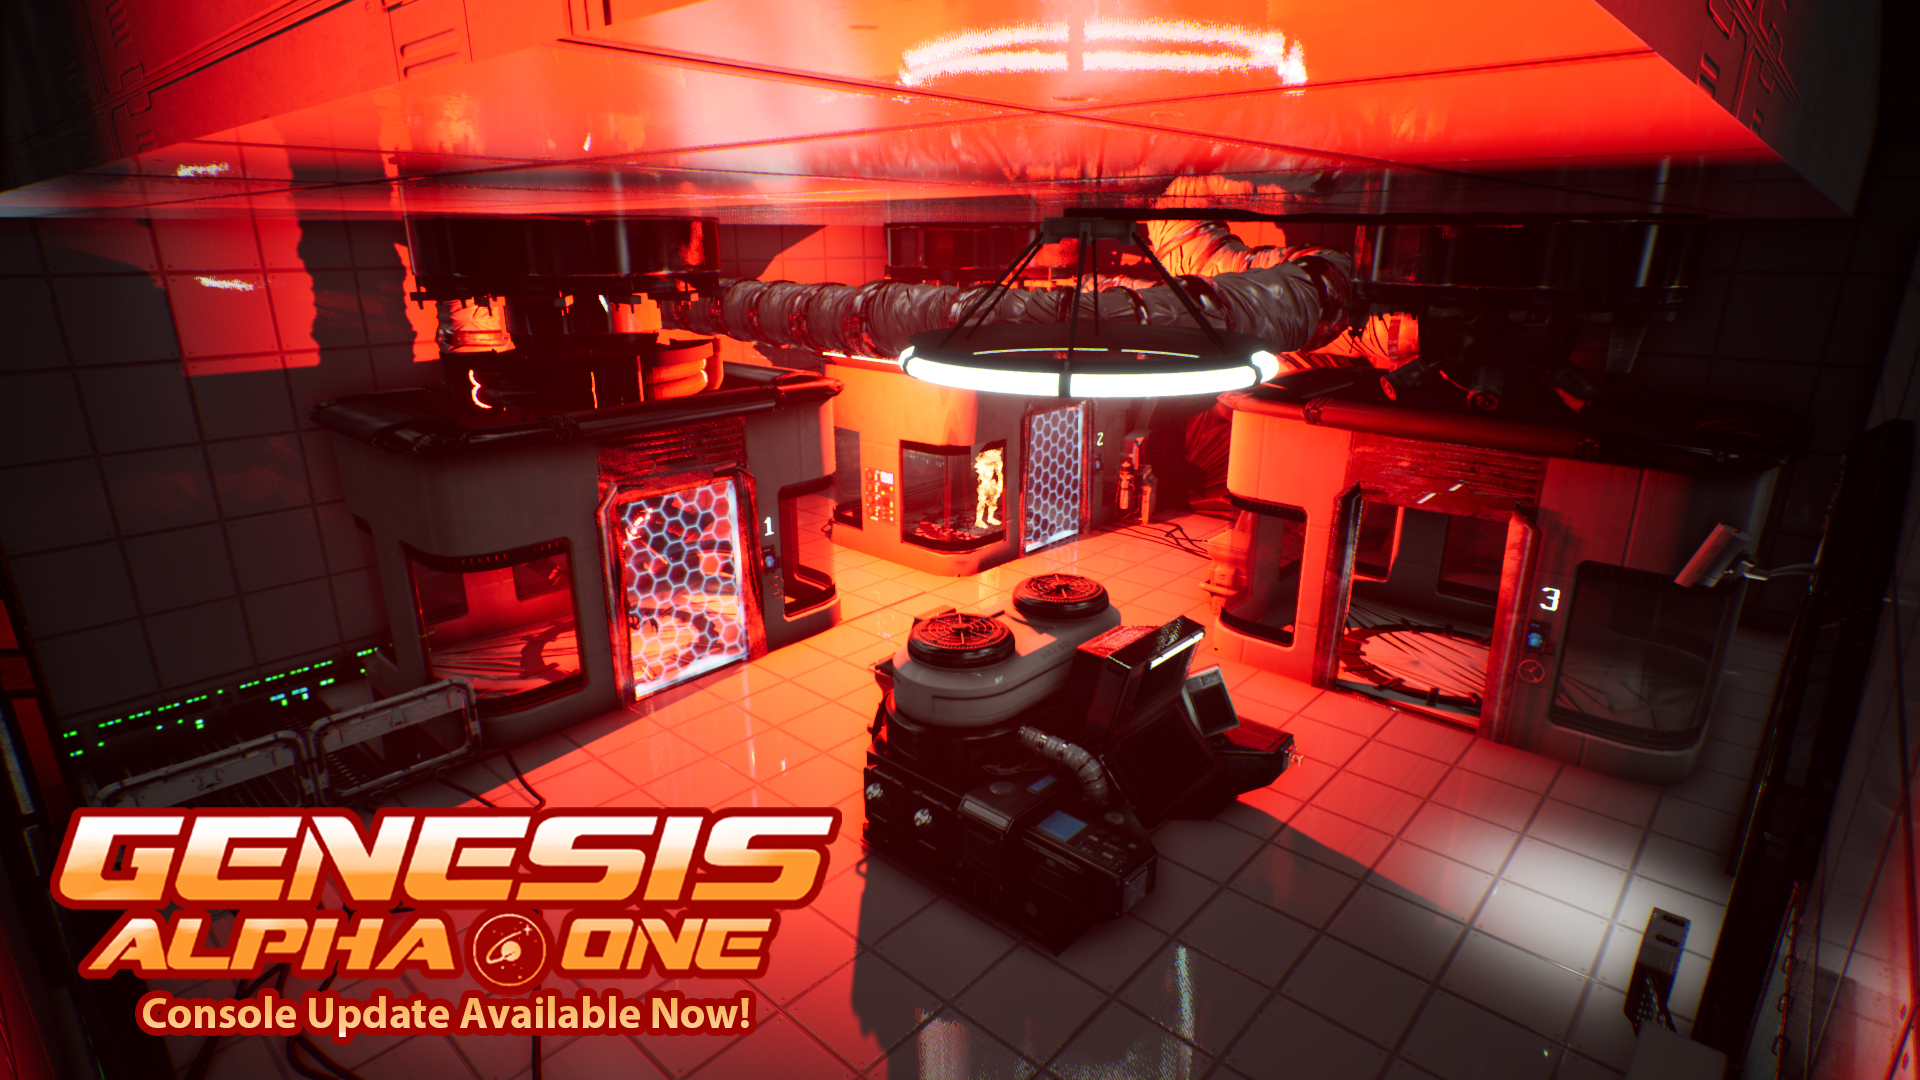 Genesis Alpha One – Console Update Out Now!